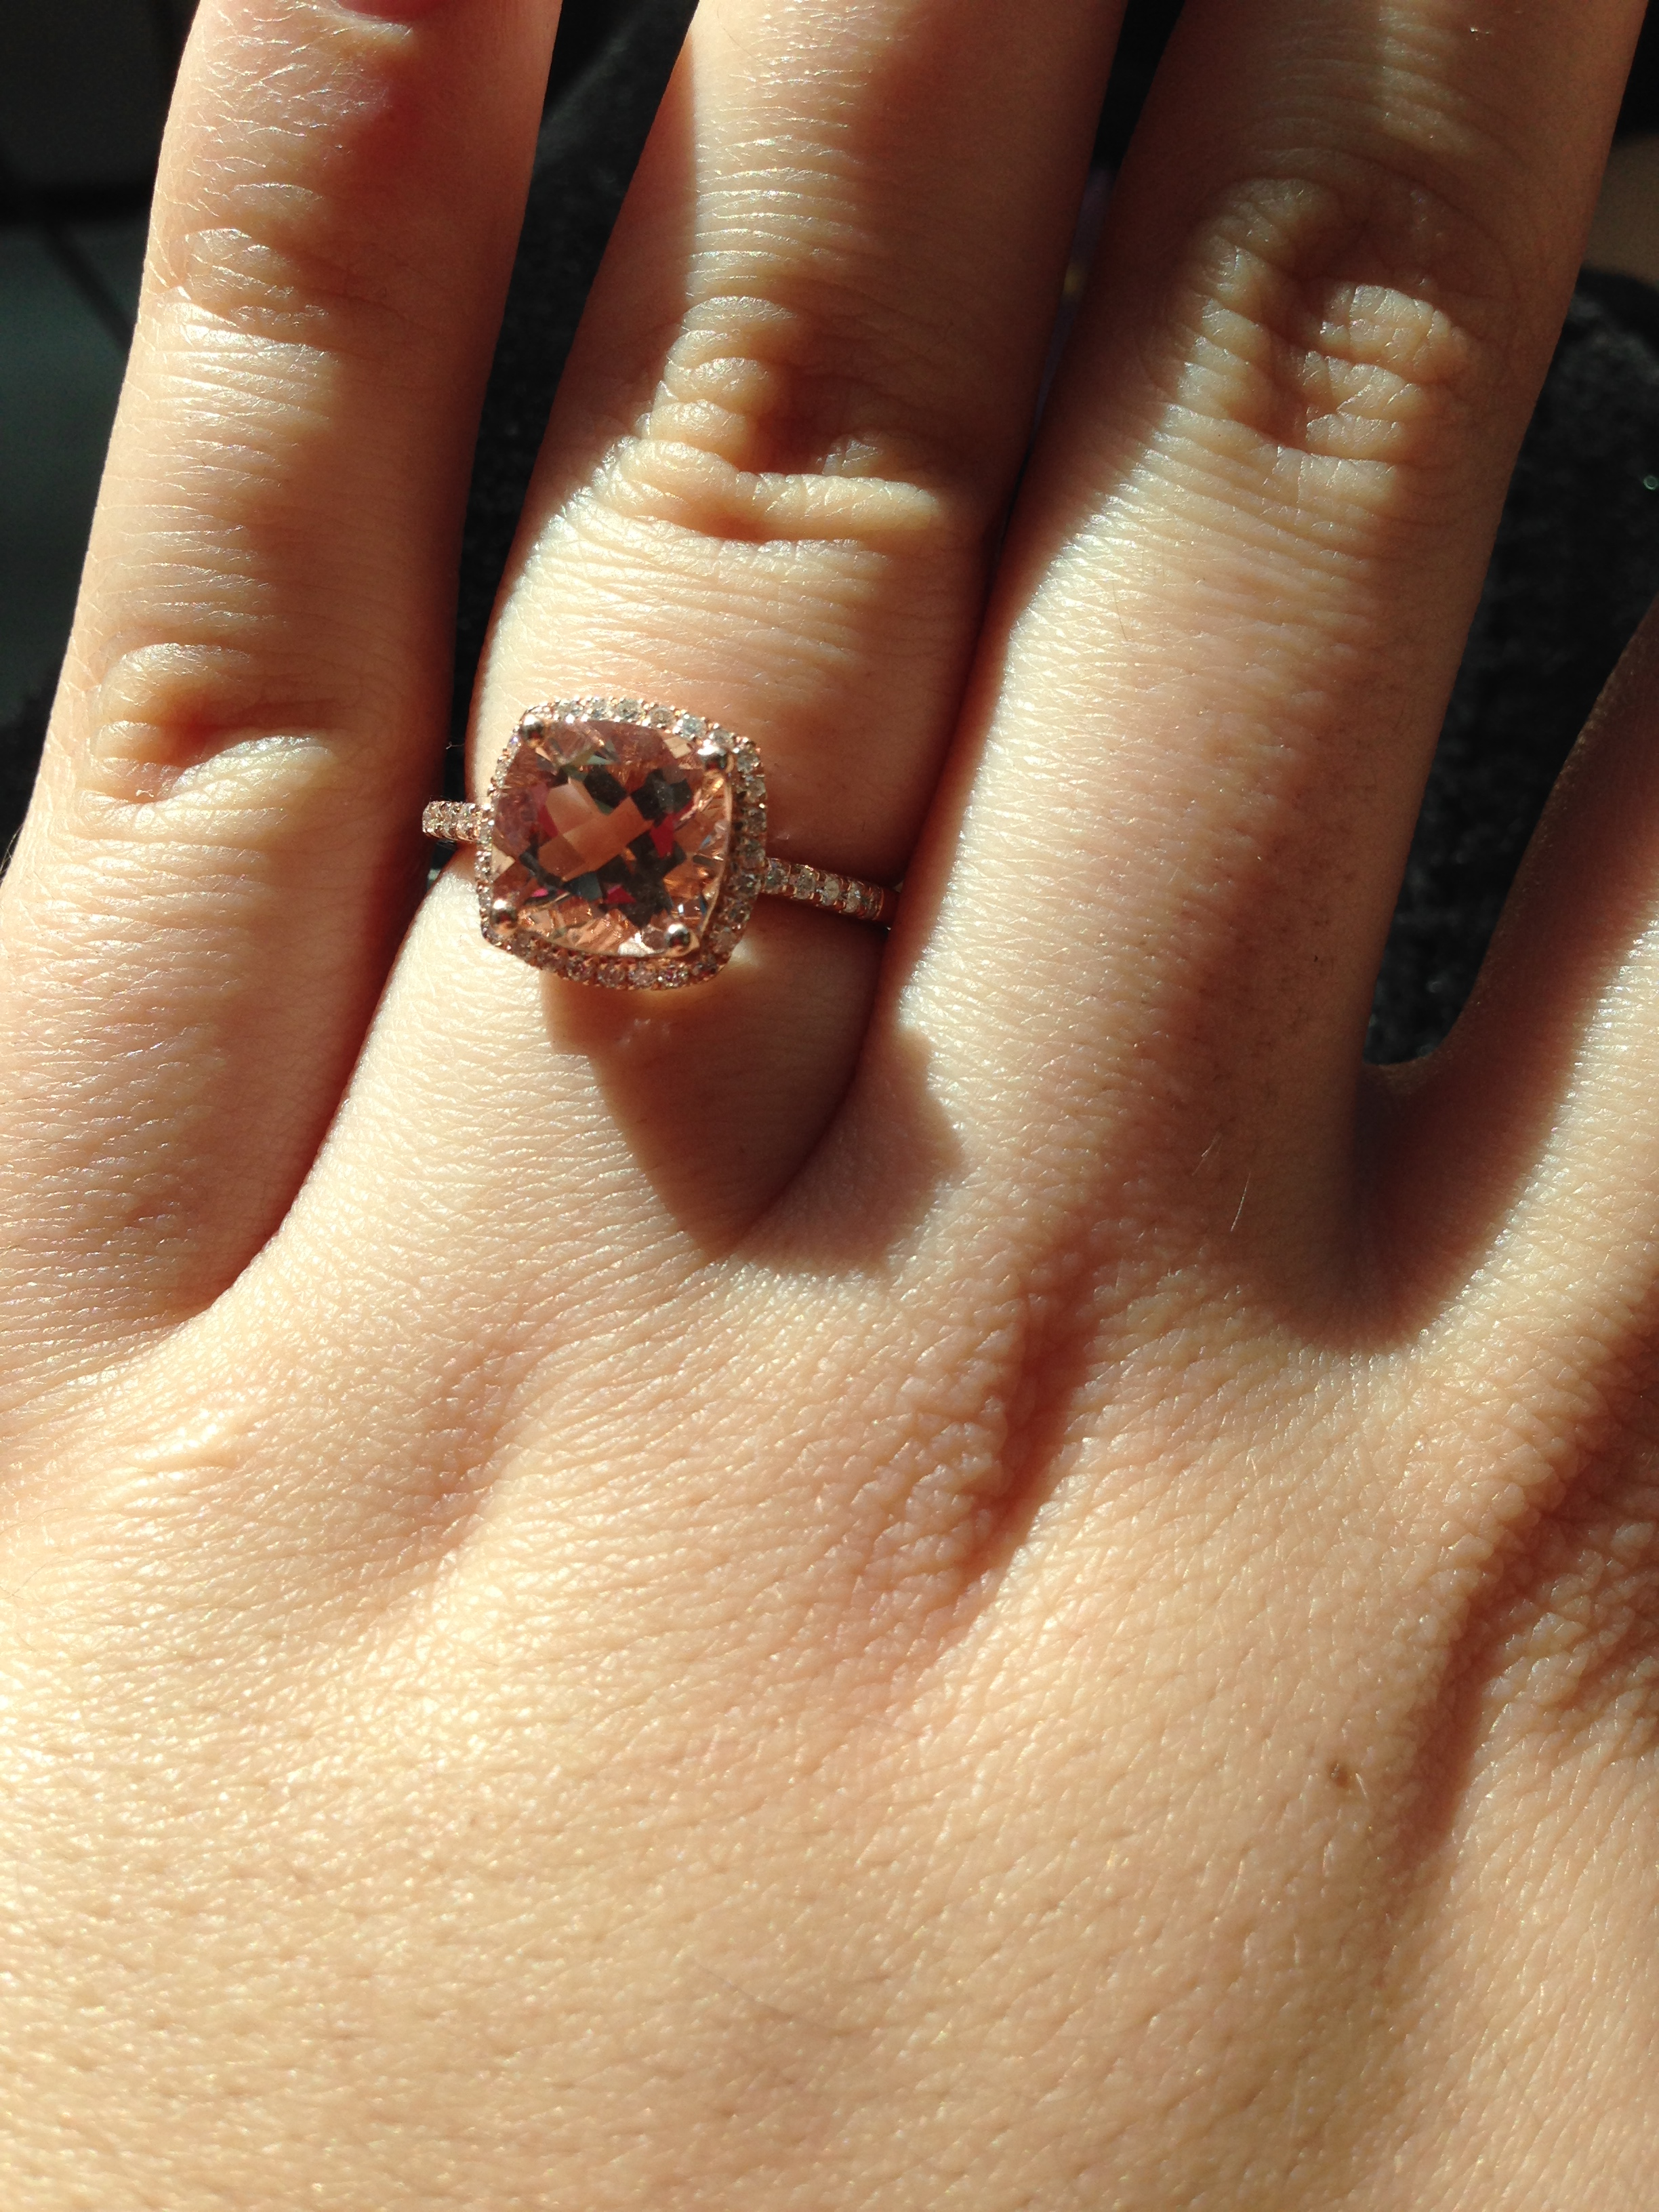 My Journey With A Morganite Engagement Ring Advice About Choosing Morganite For Your E Ring